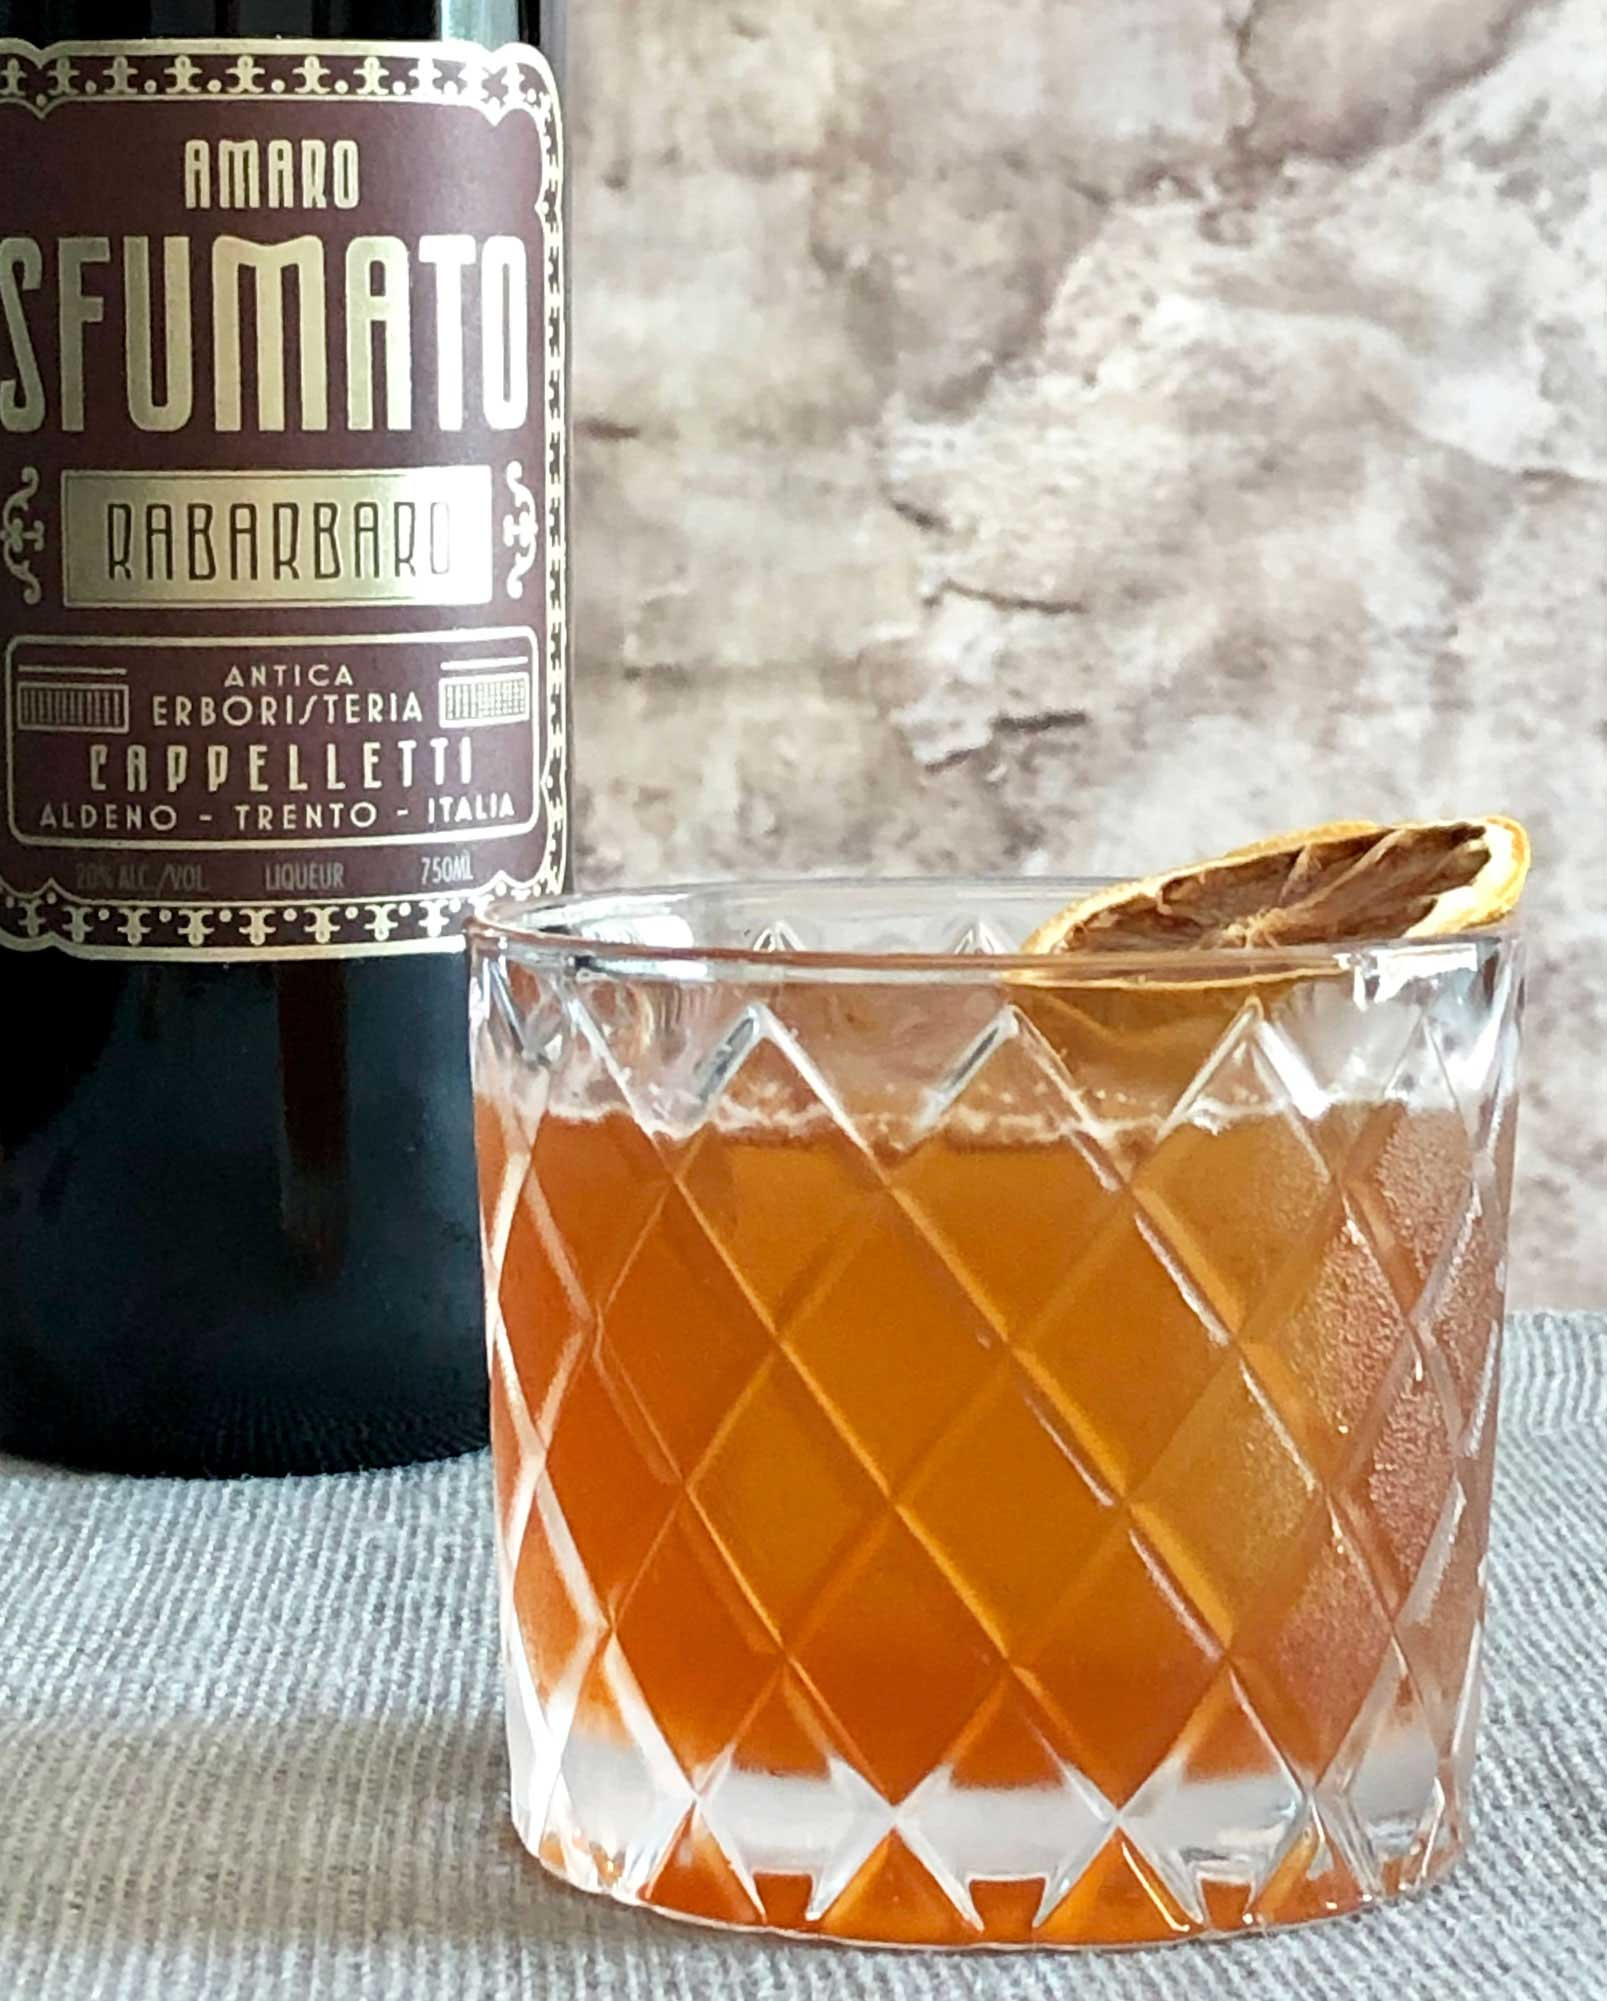 An example of the Welcome, Ghosts, the mixed drink (cocktail), by Nic Christiansen, Louisville, KY, featuring Copper & Kings Immature Brandy, Amaro Sfumato Rabarbaro, lemon juice, honey syrup, Angostura bitters, and chocolate bitters; photo by Lee Edwards